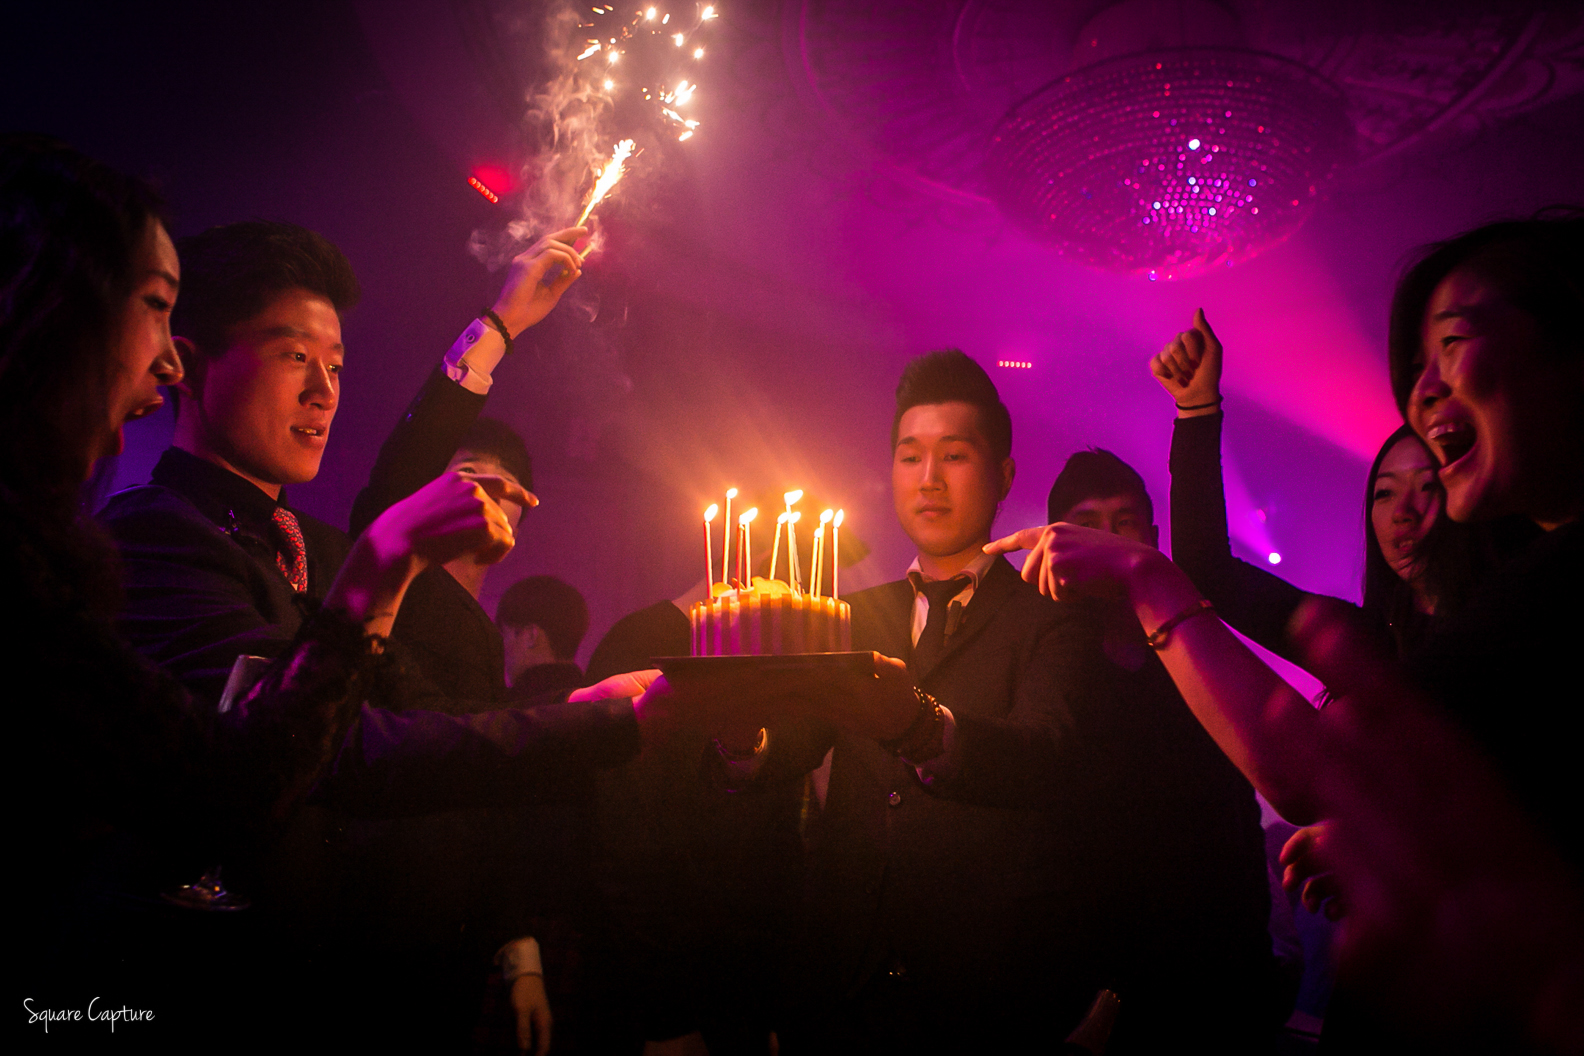 birthday-in-the-club-photography